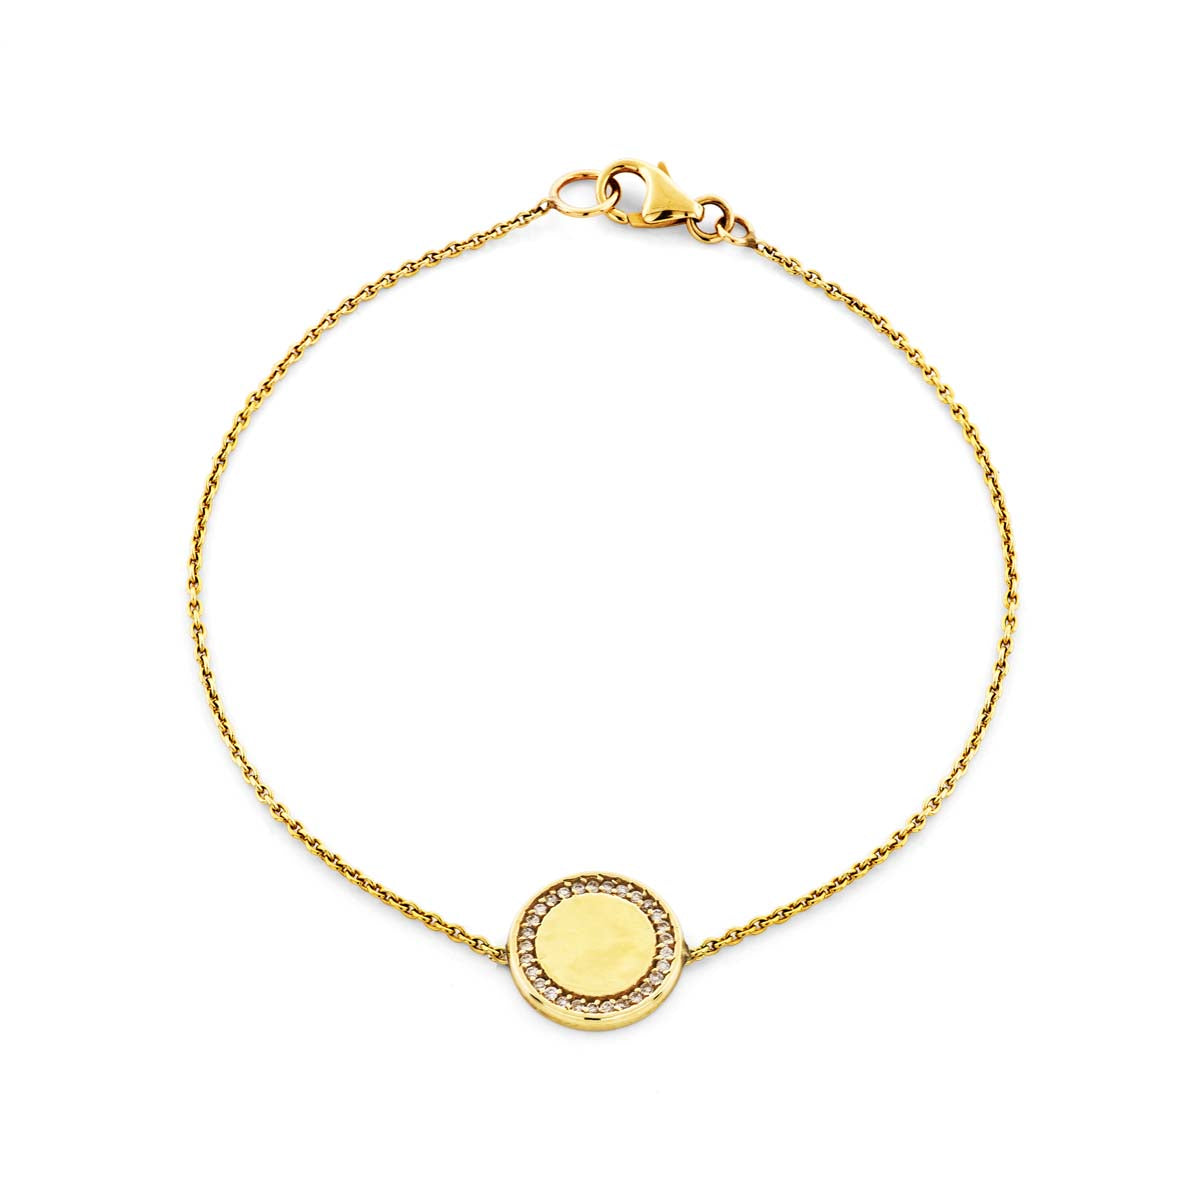 Image of a gold & diamond outline medallion bracelet.